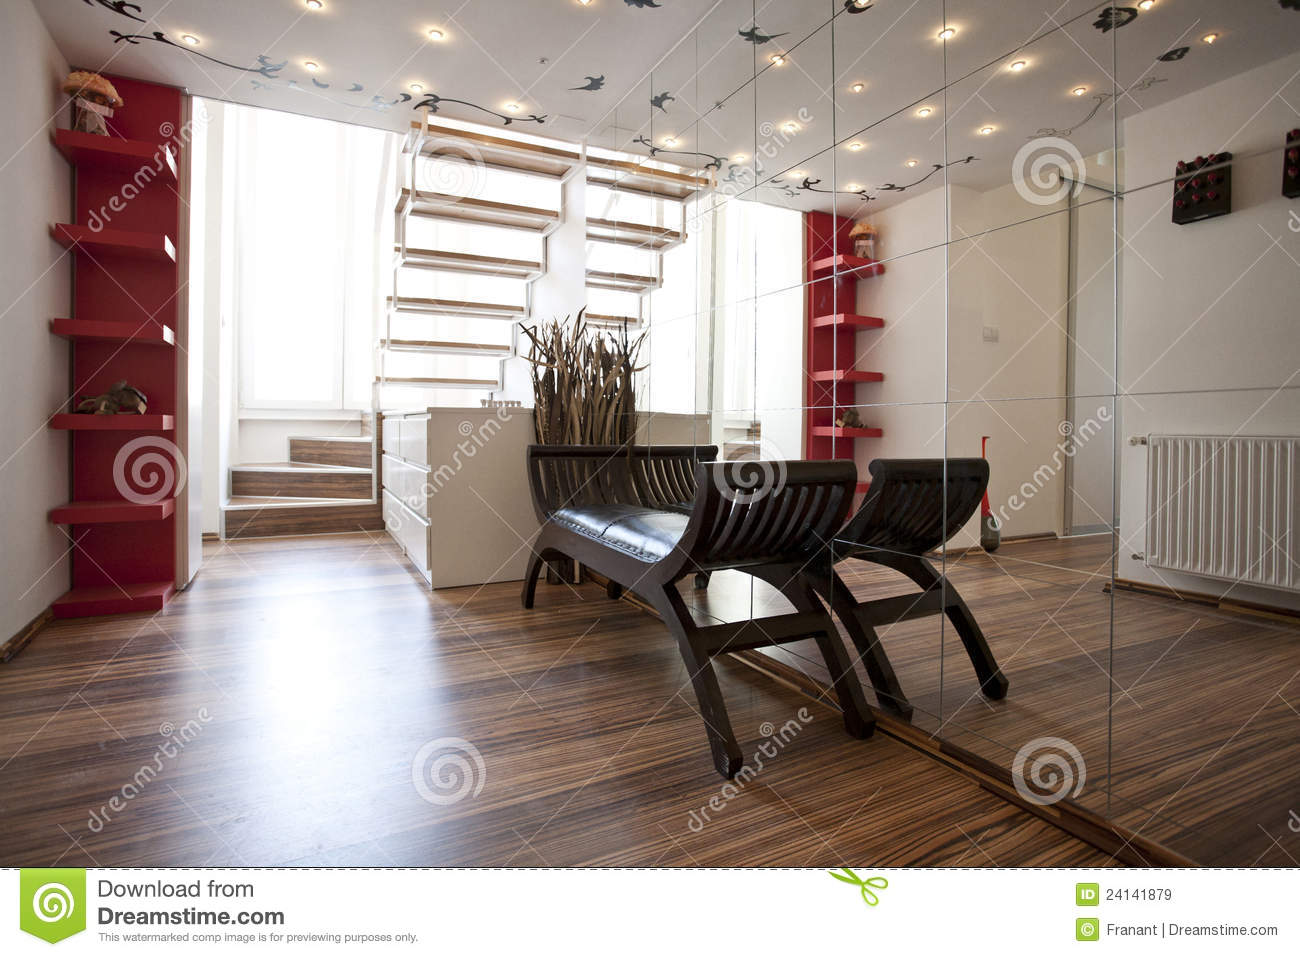 home lobby interior design royalty free stock images image 24141879. Black Bedroom Furniture Sets. Home Design Ideas